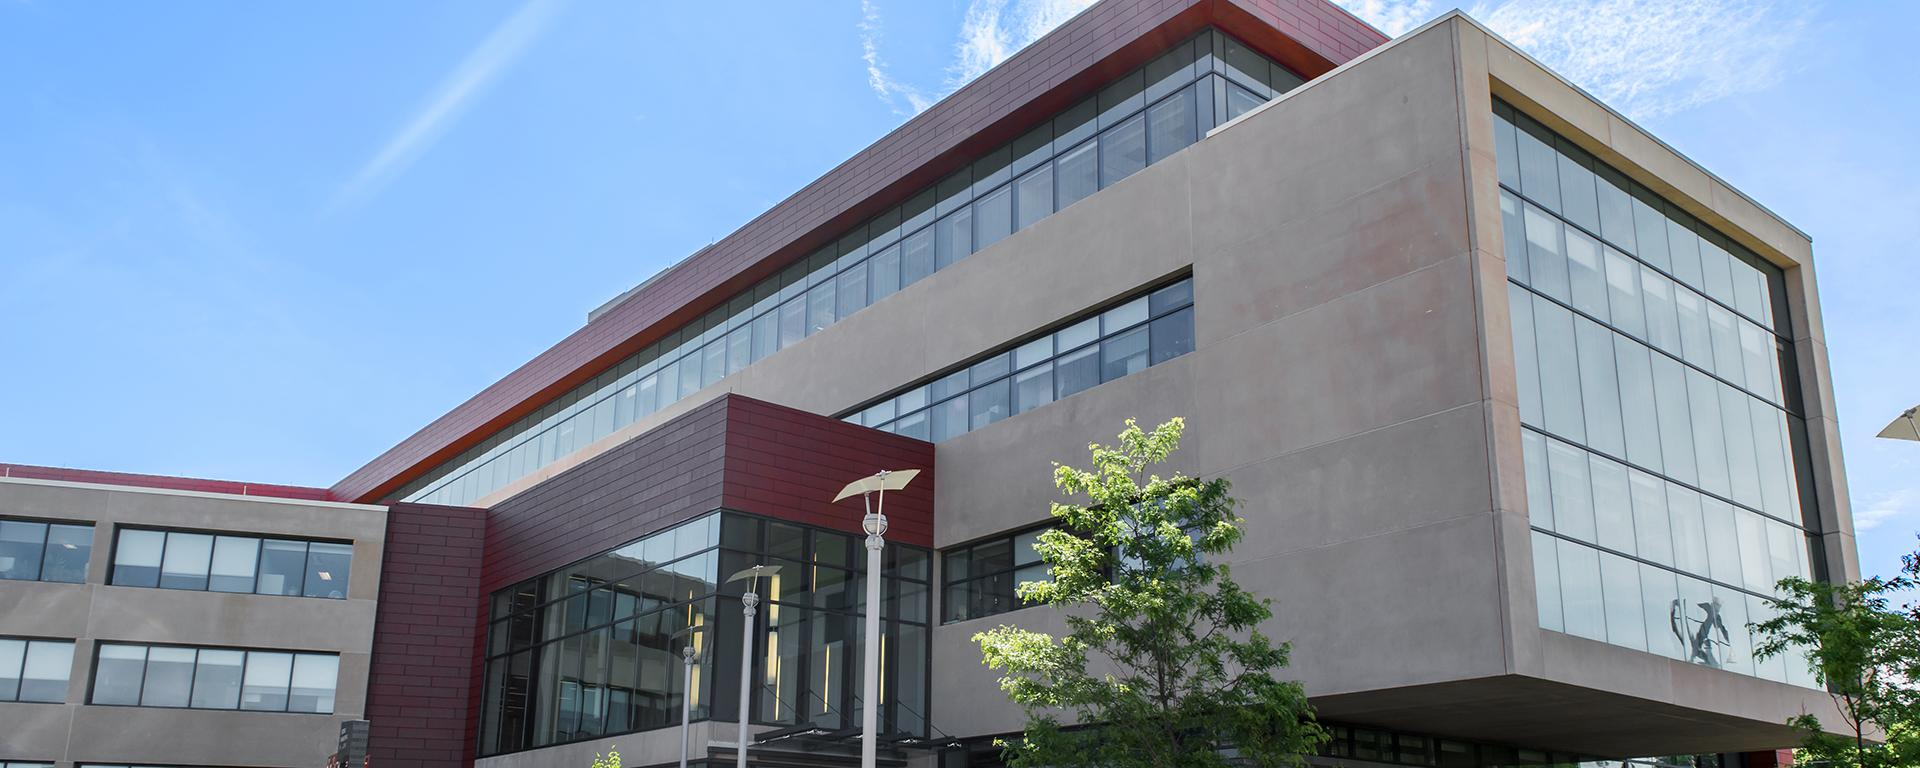 Shineman Center Exterior